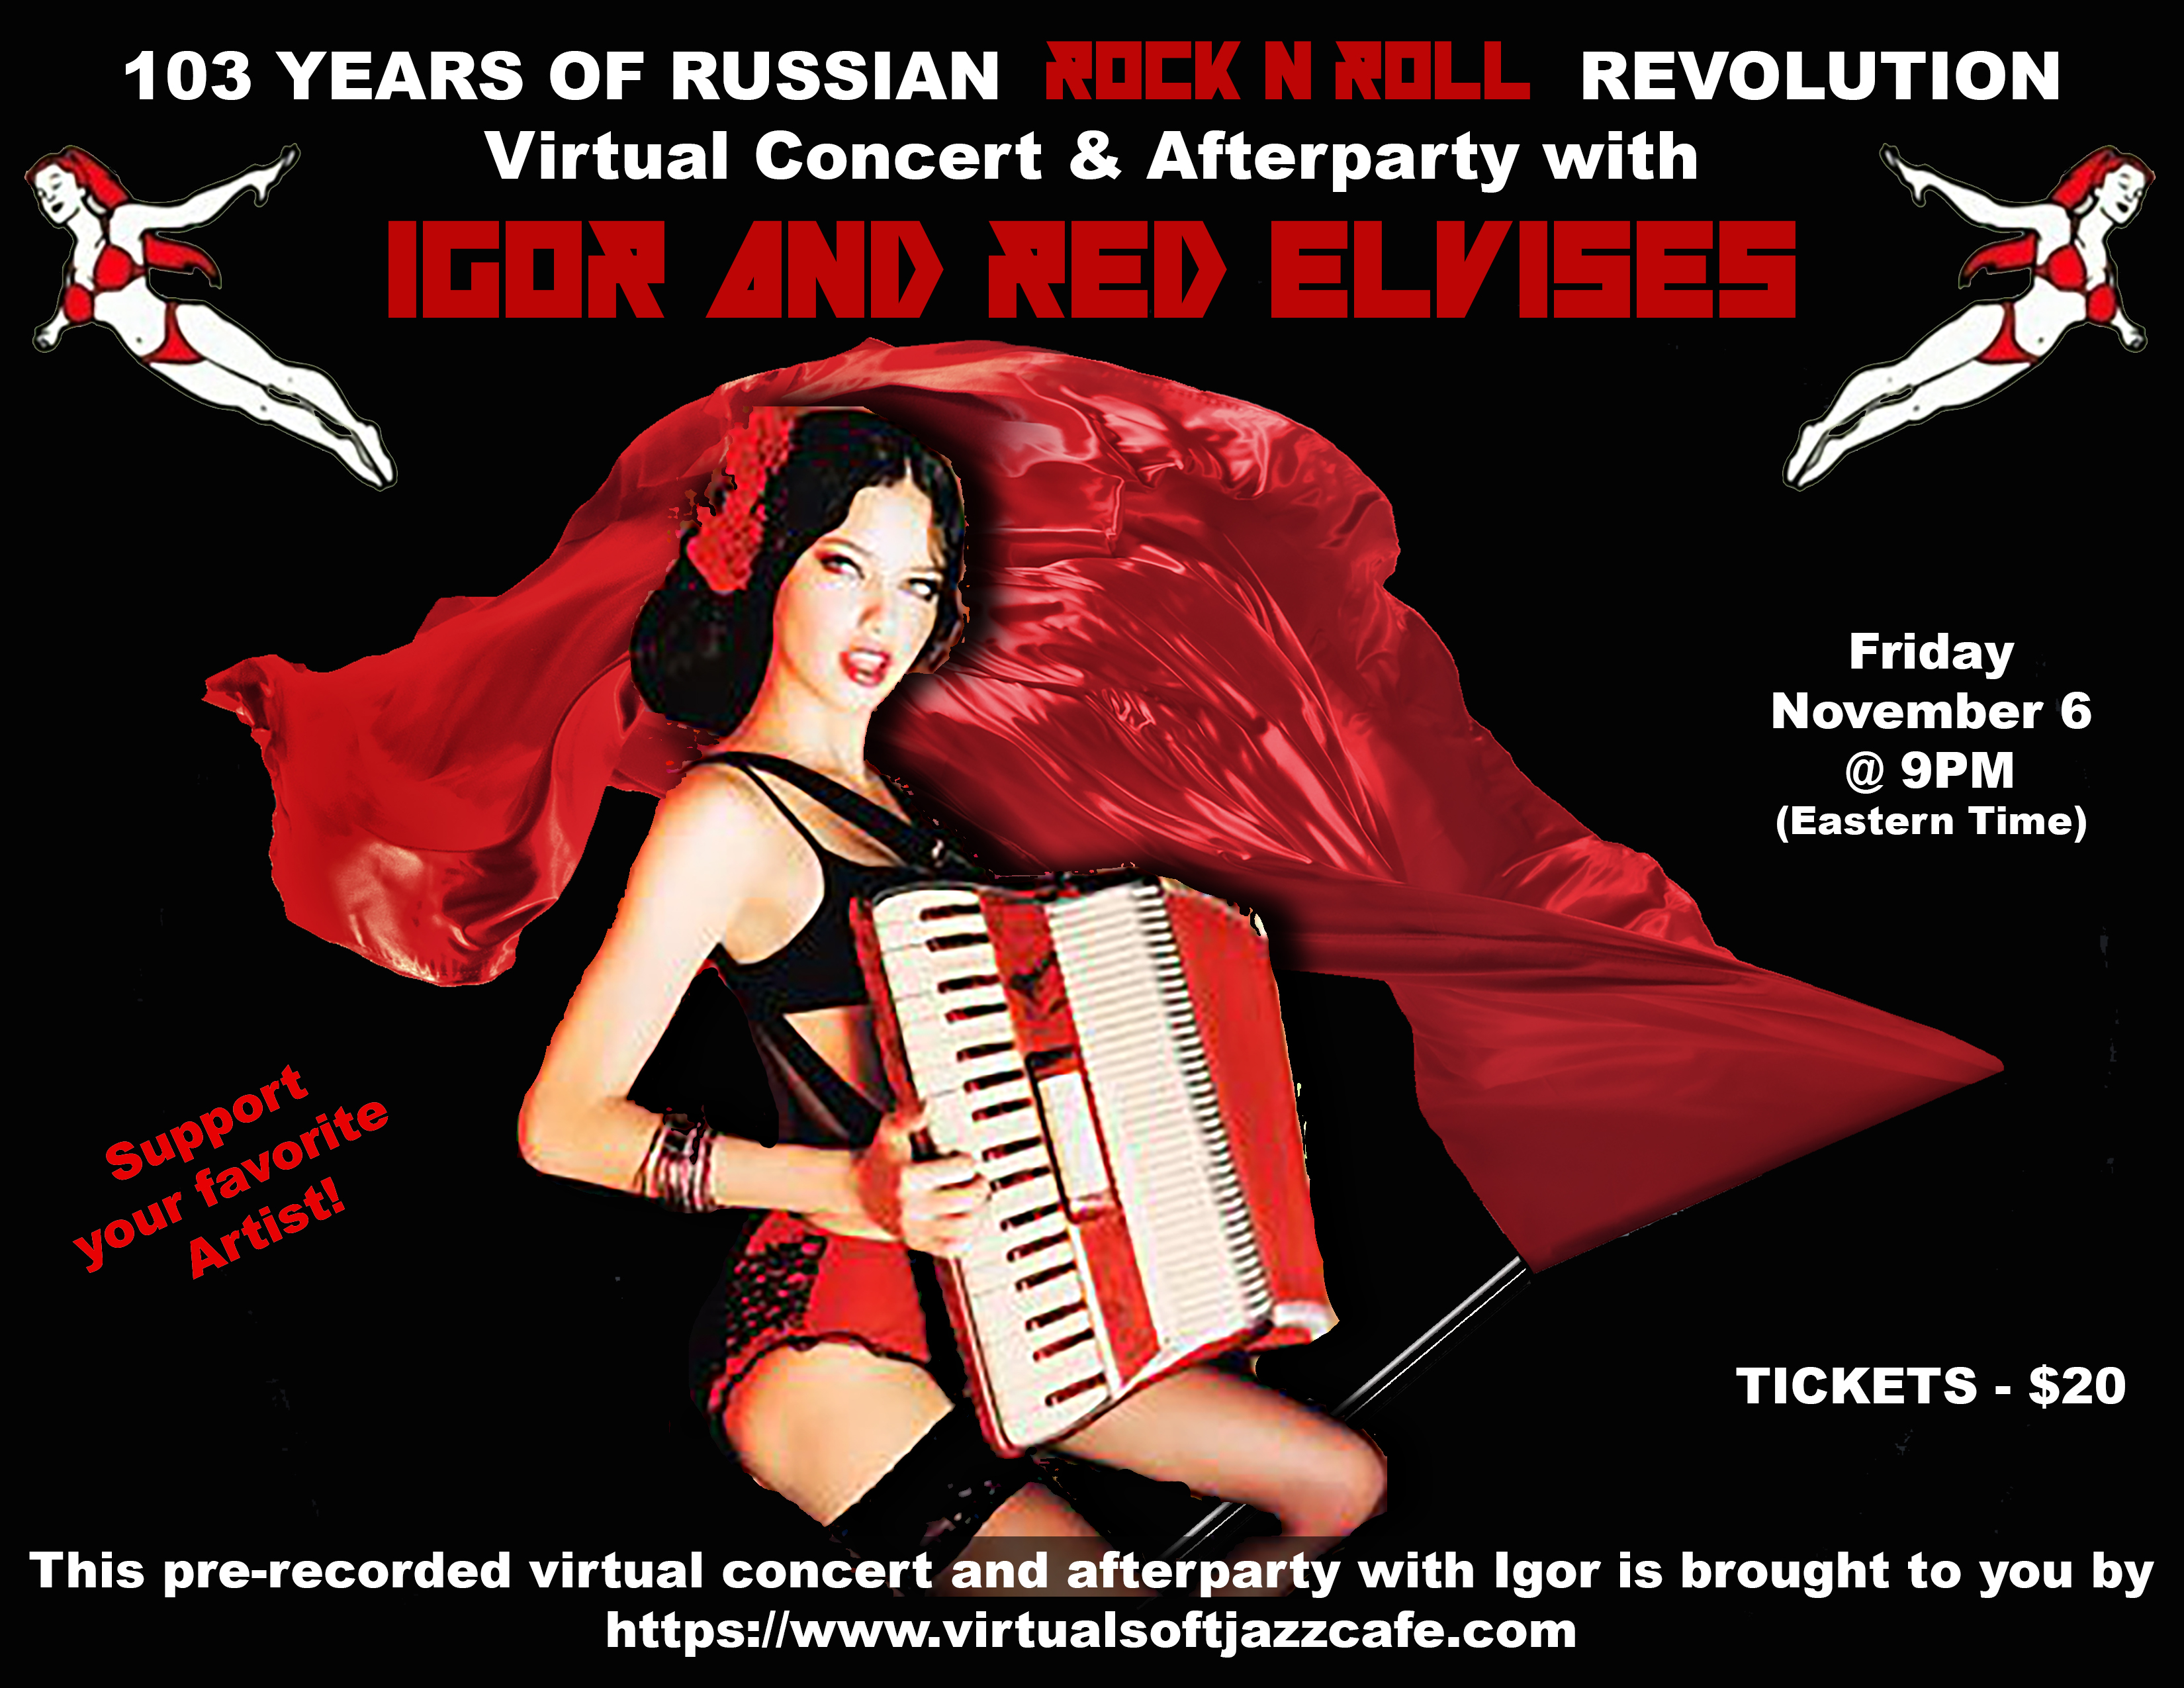 IGOR & RED ELVISES - Virtual Concert & Afterparty